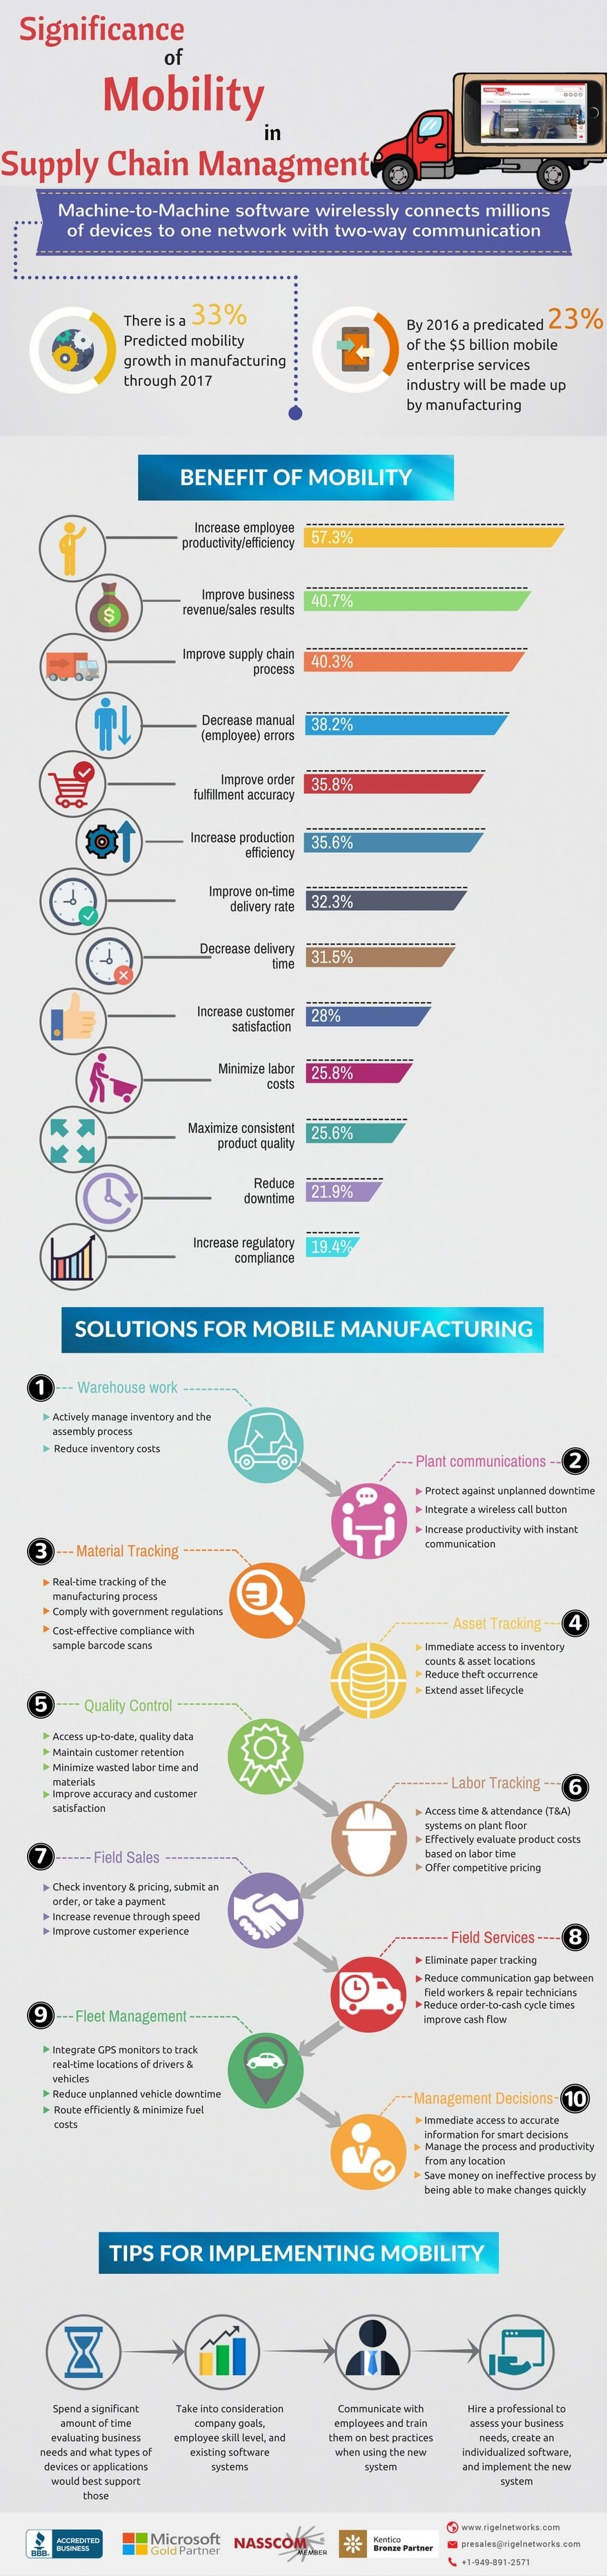 mobility-in-supply-chain-management